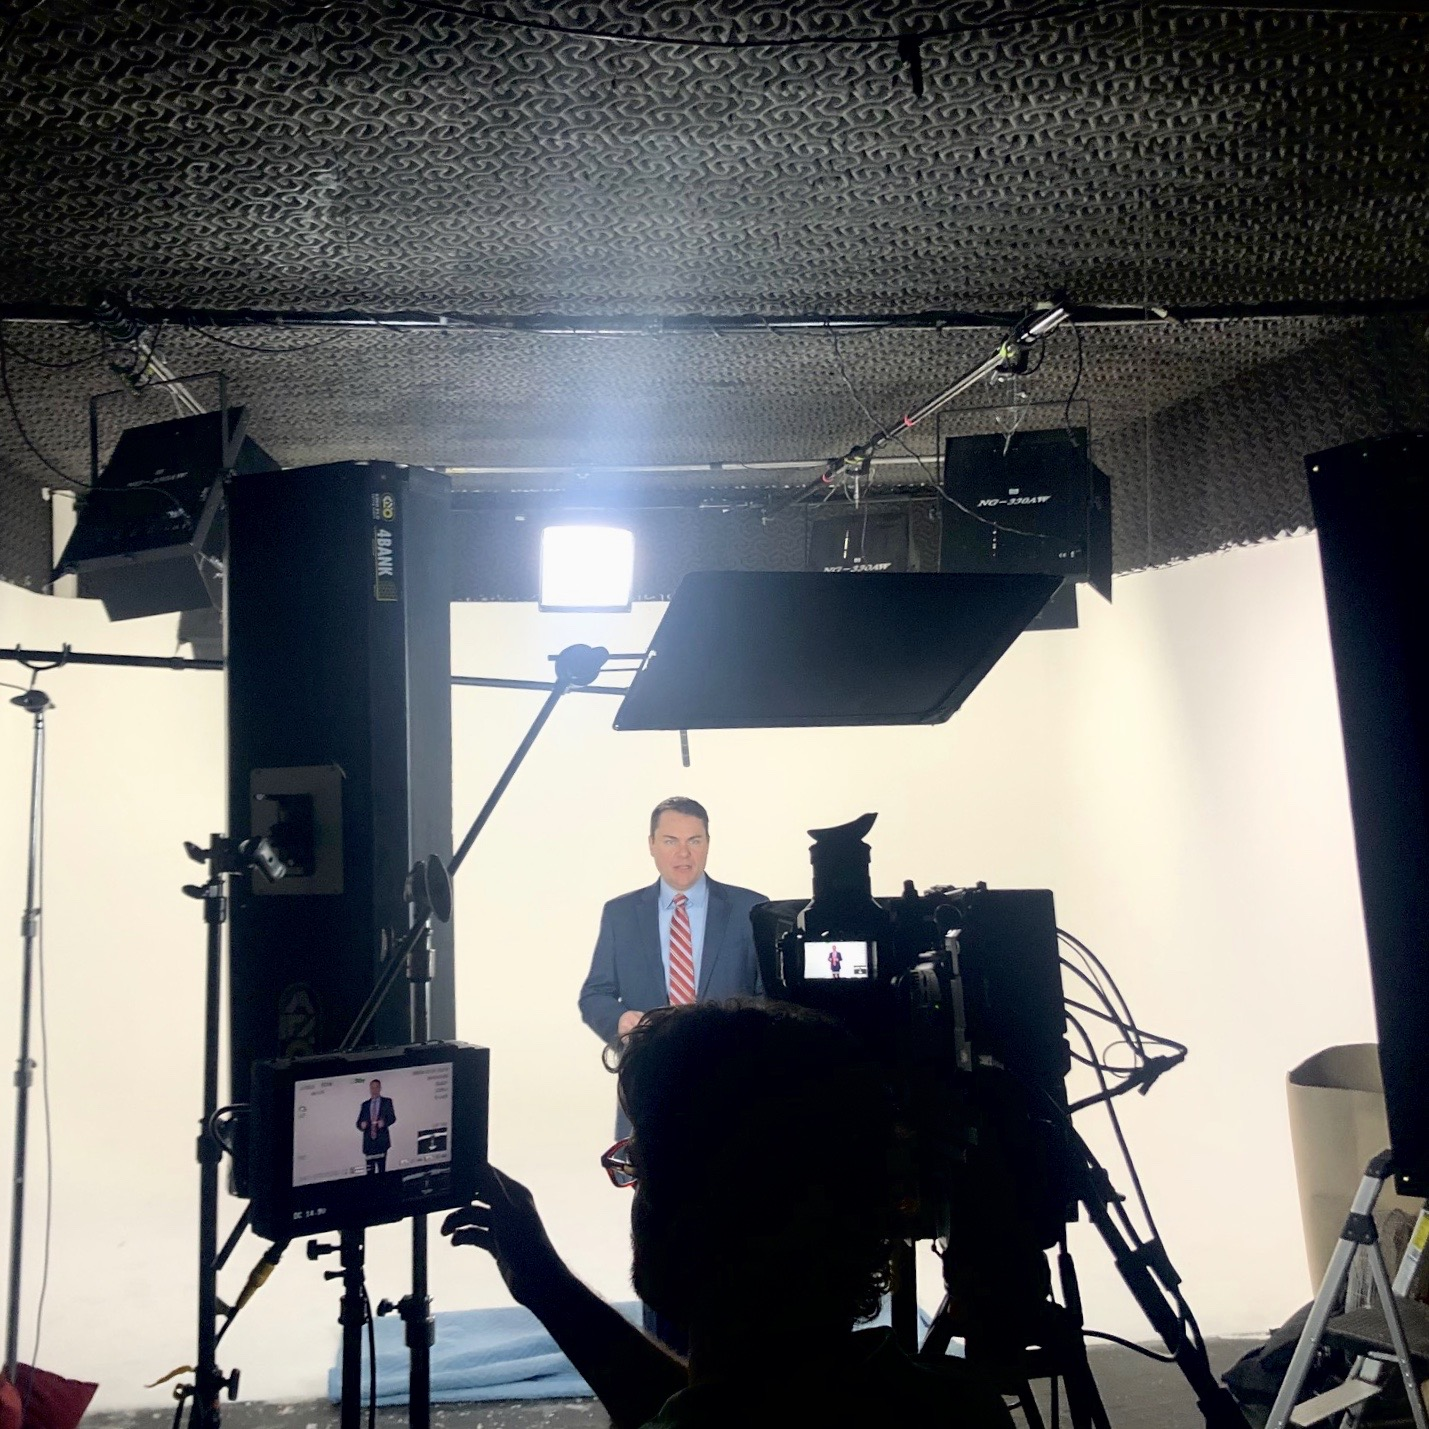 Turn on images to see Carl filming our new ad